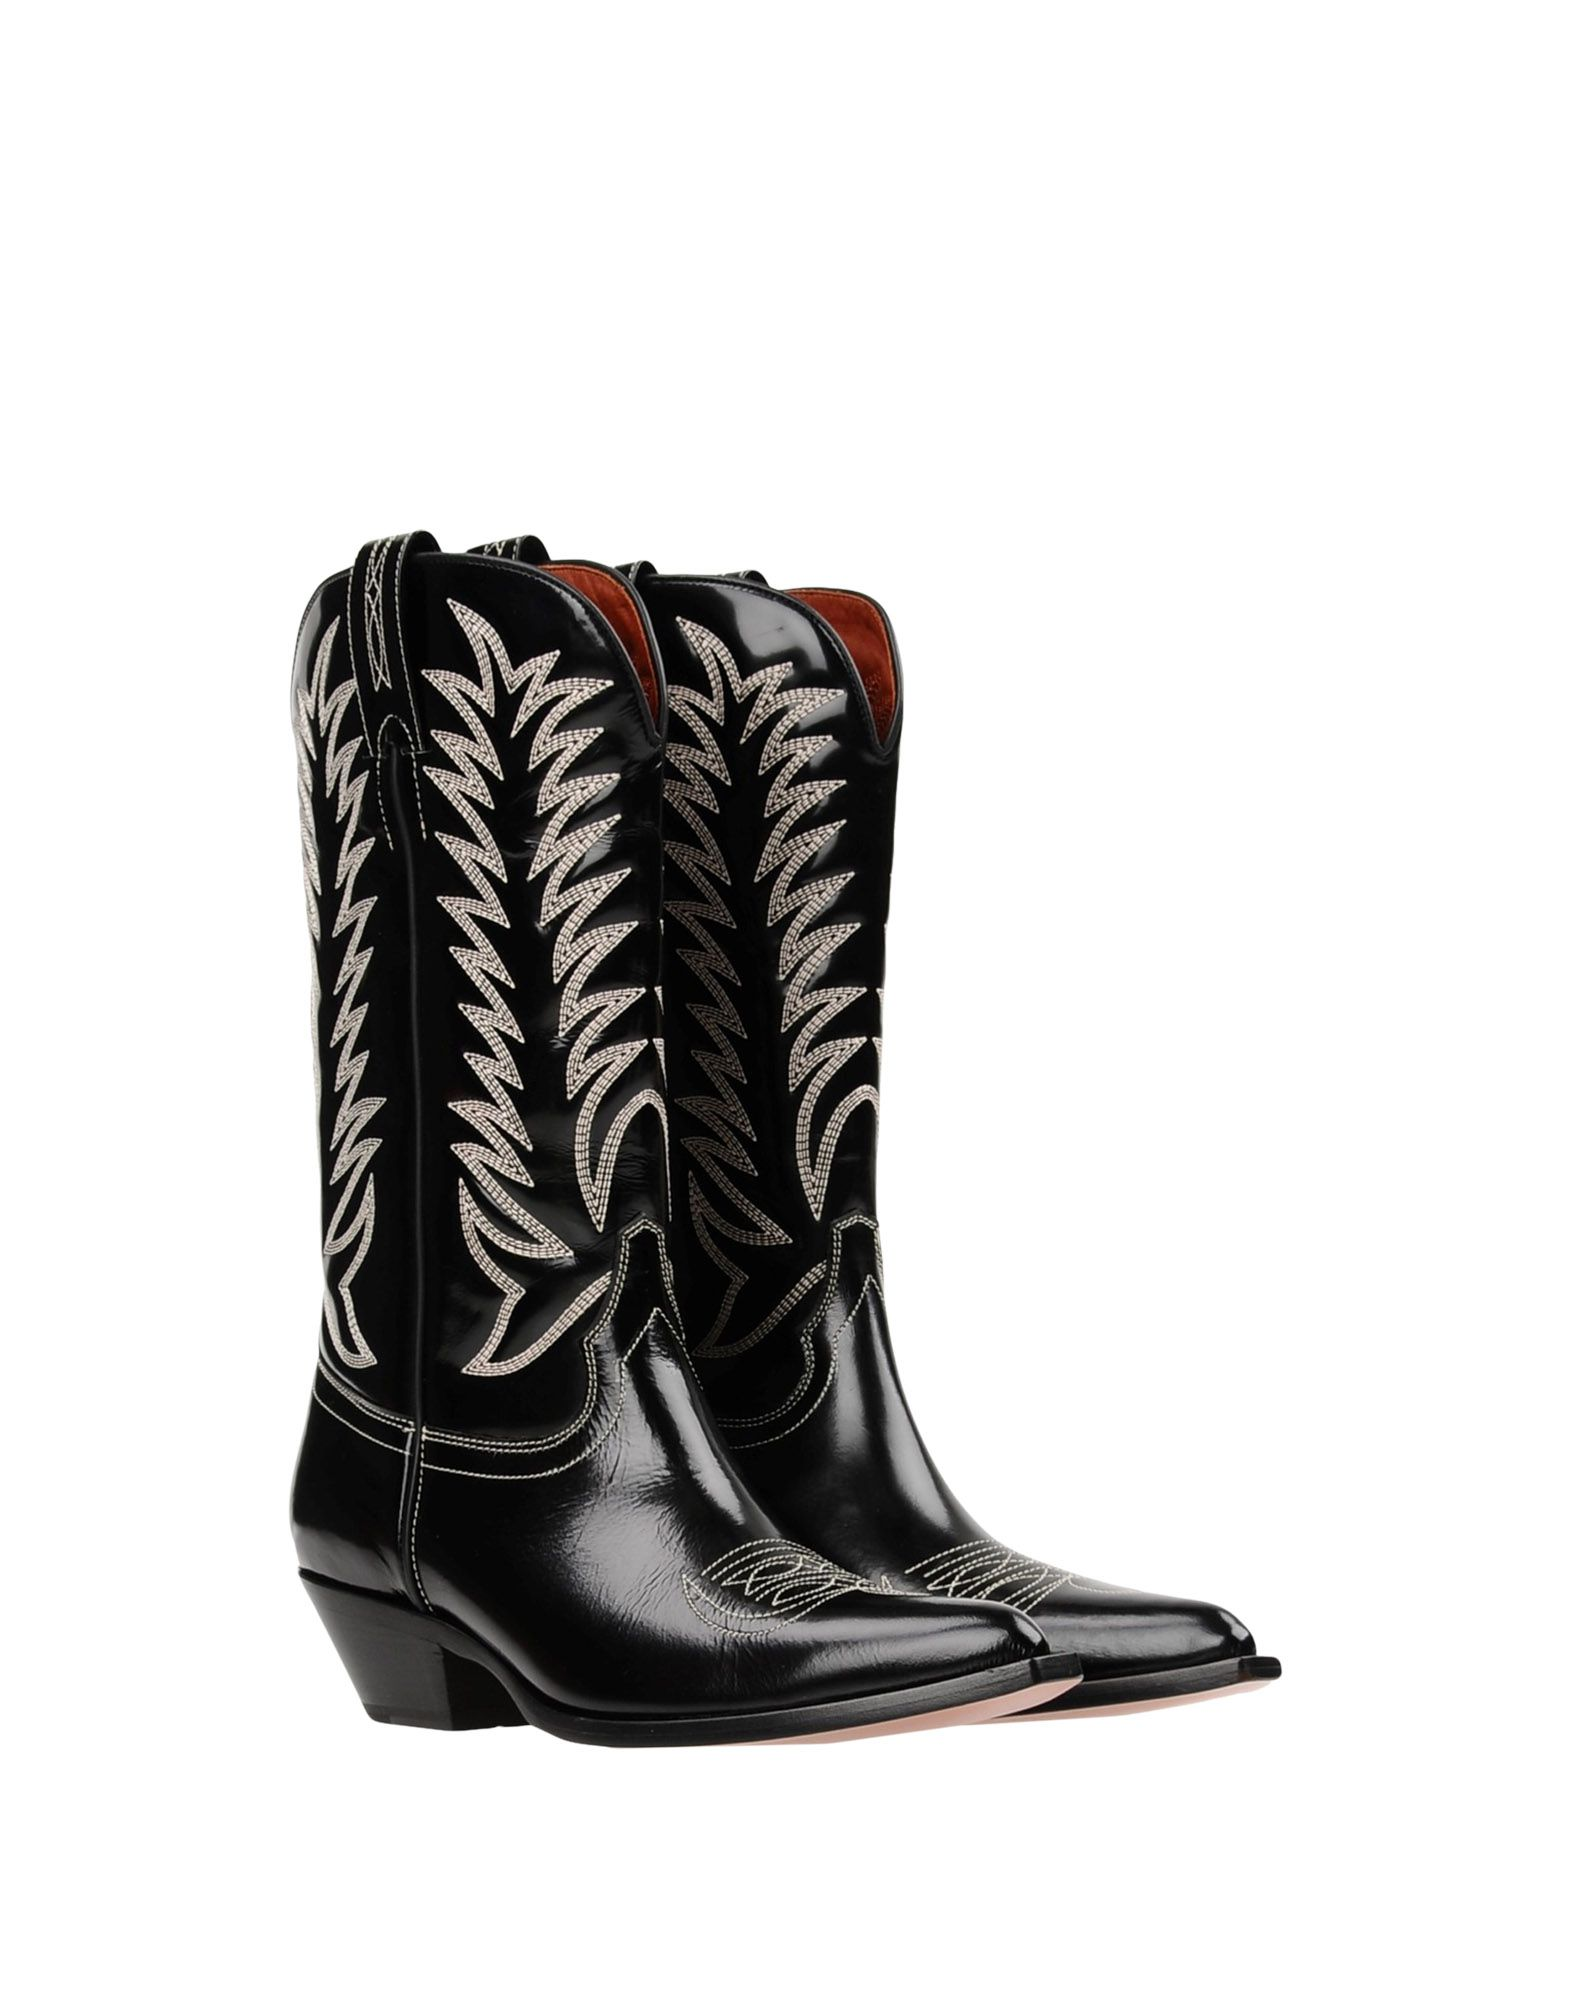 SONORA Boots in Black